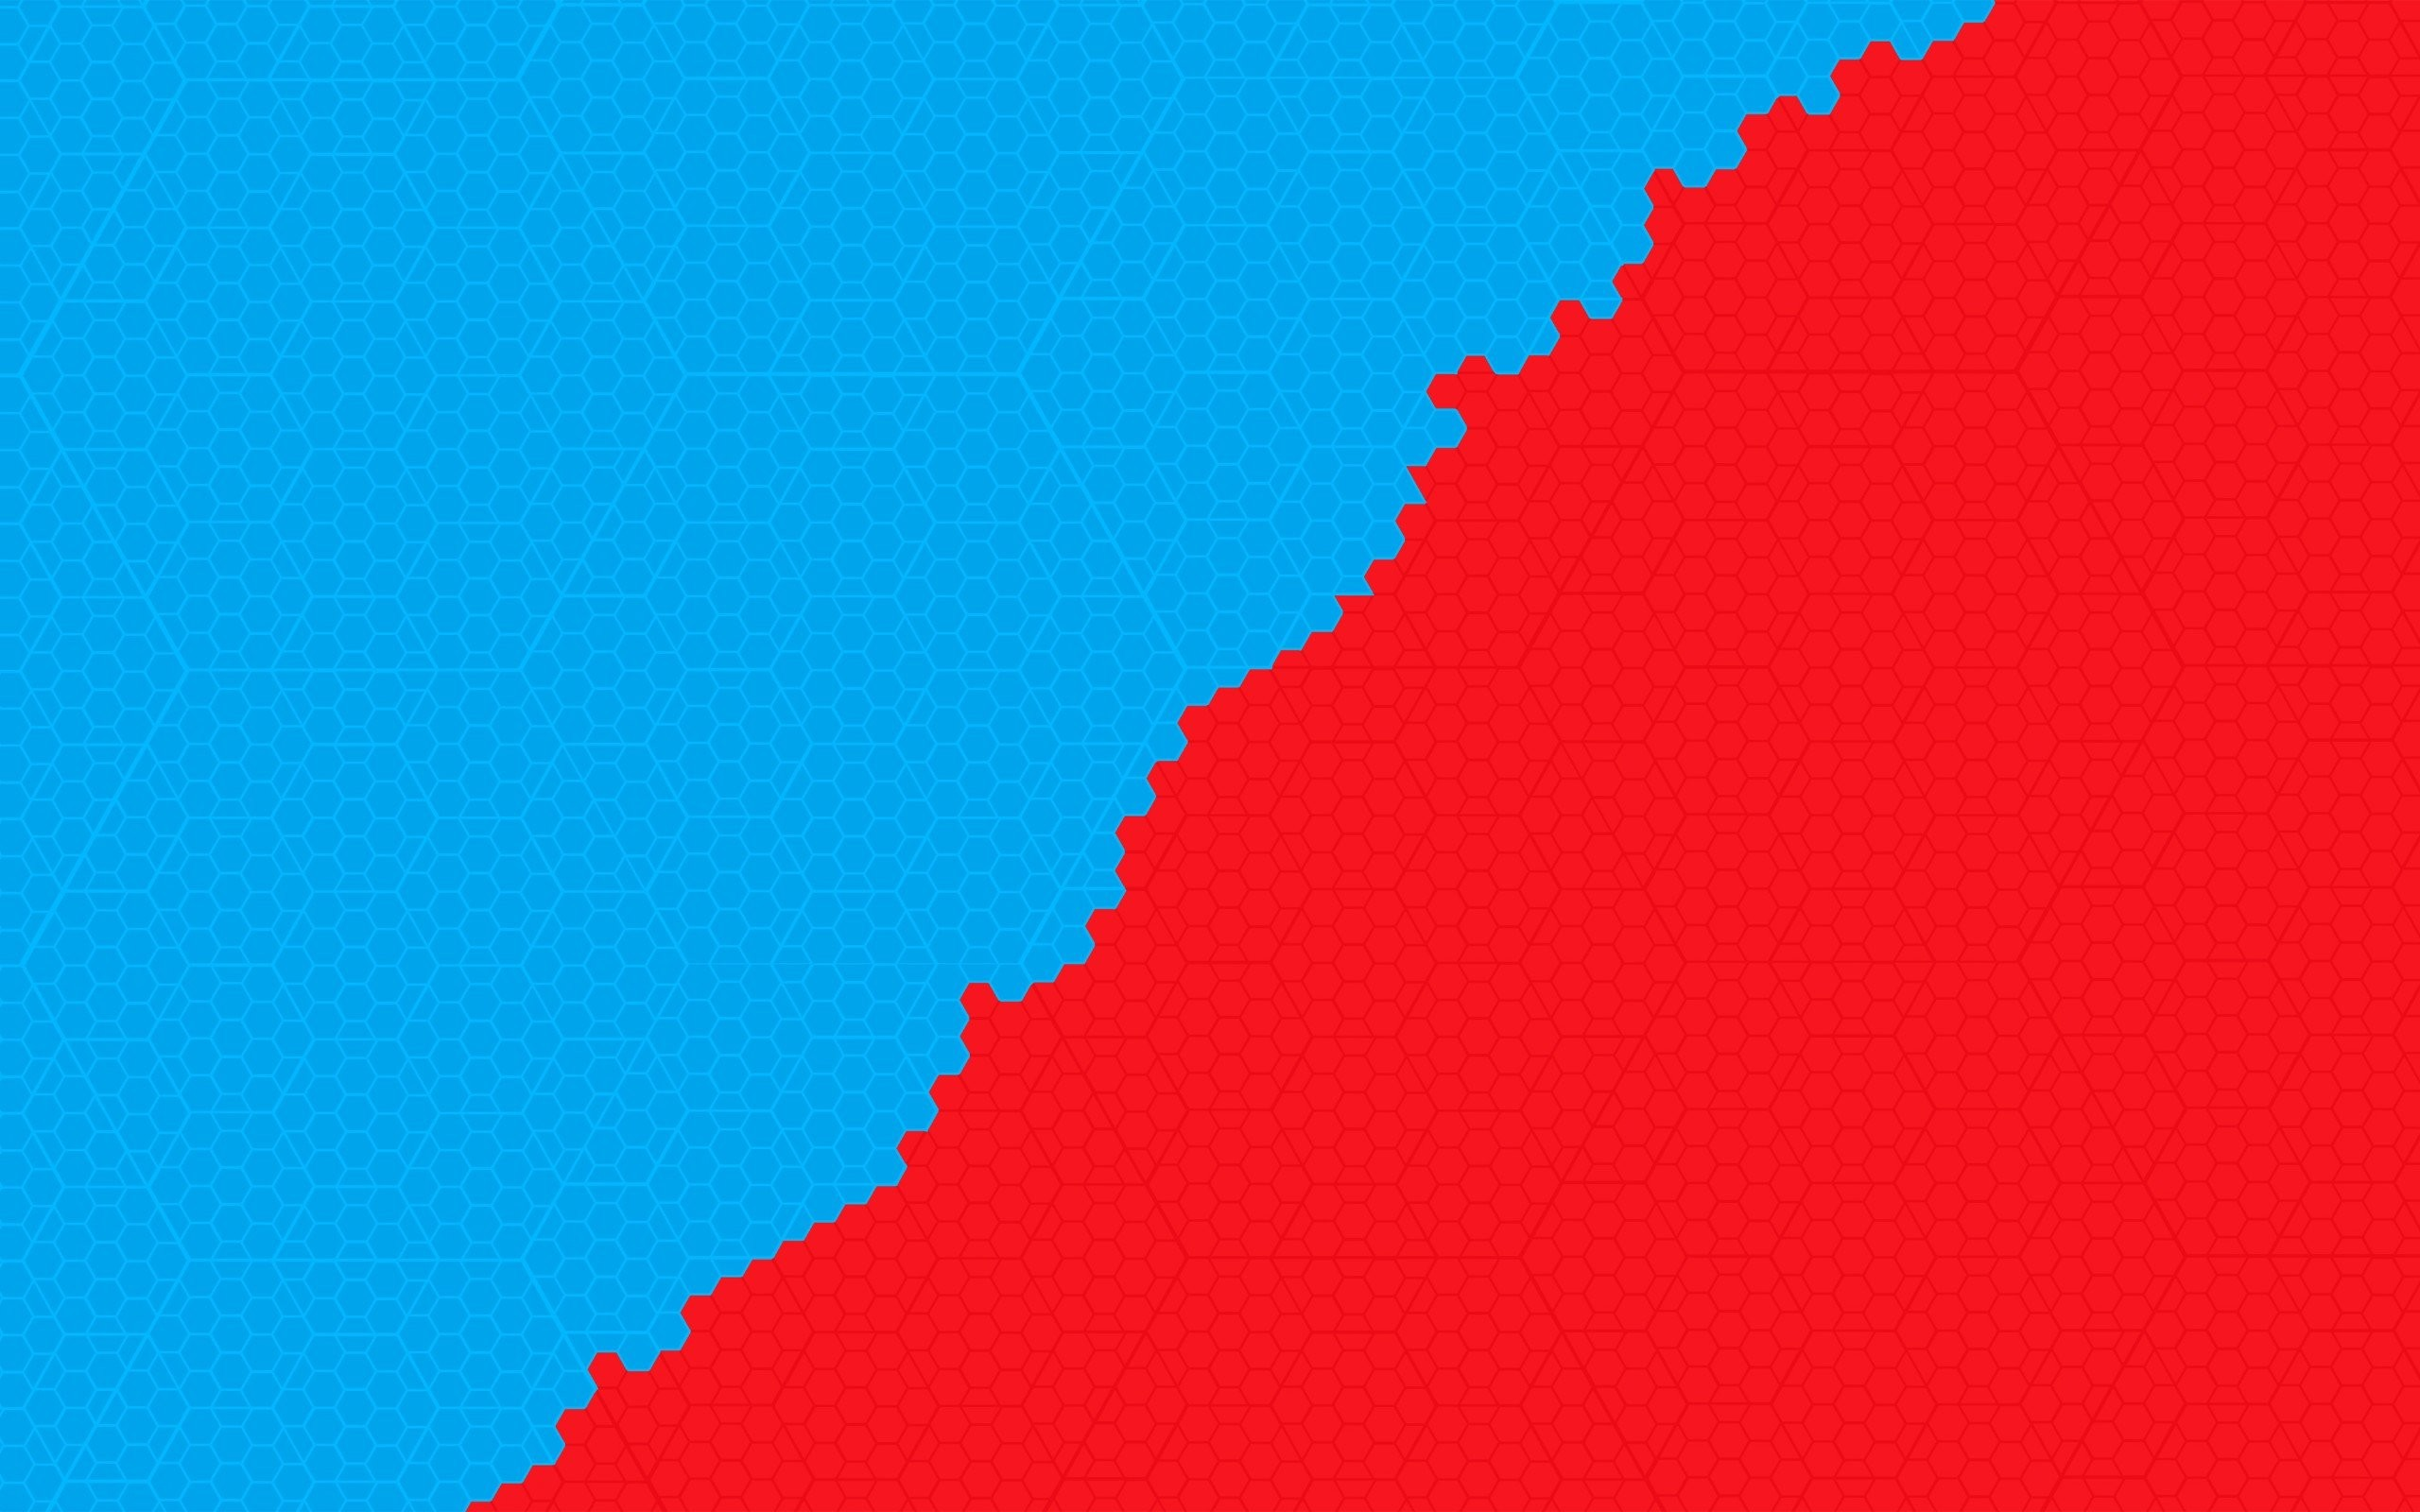 blue and red wallpaper  73  images